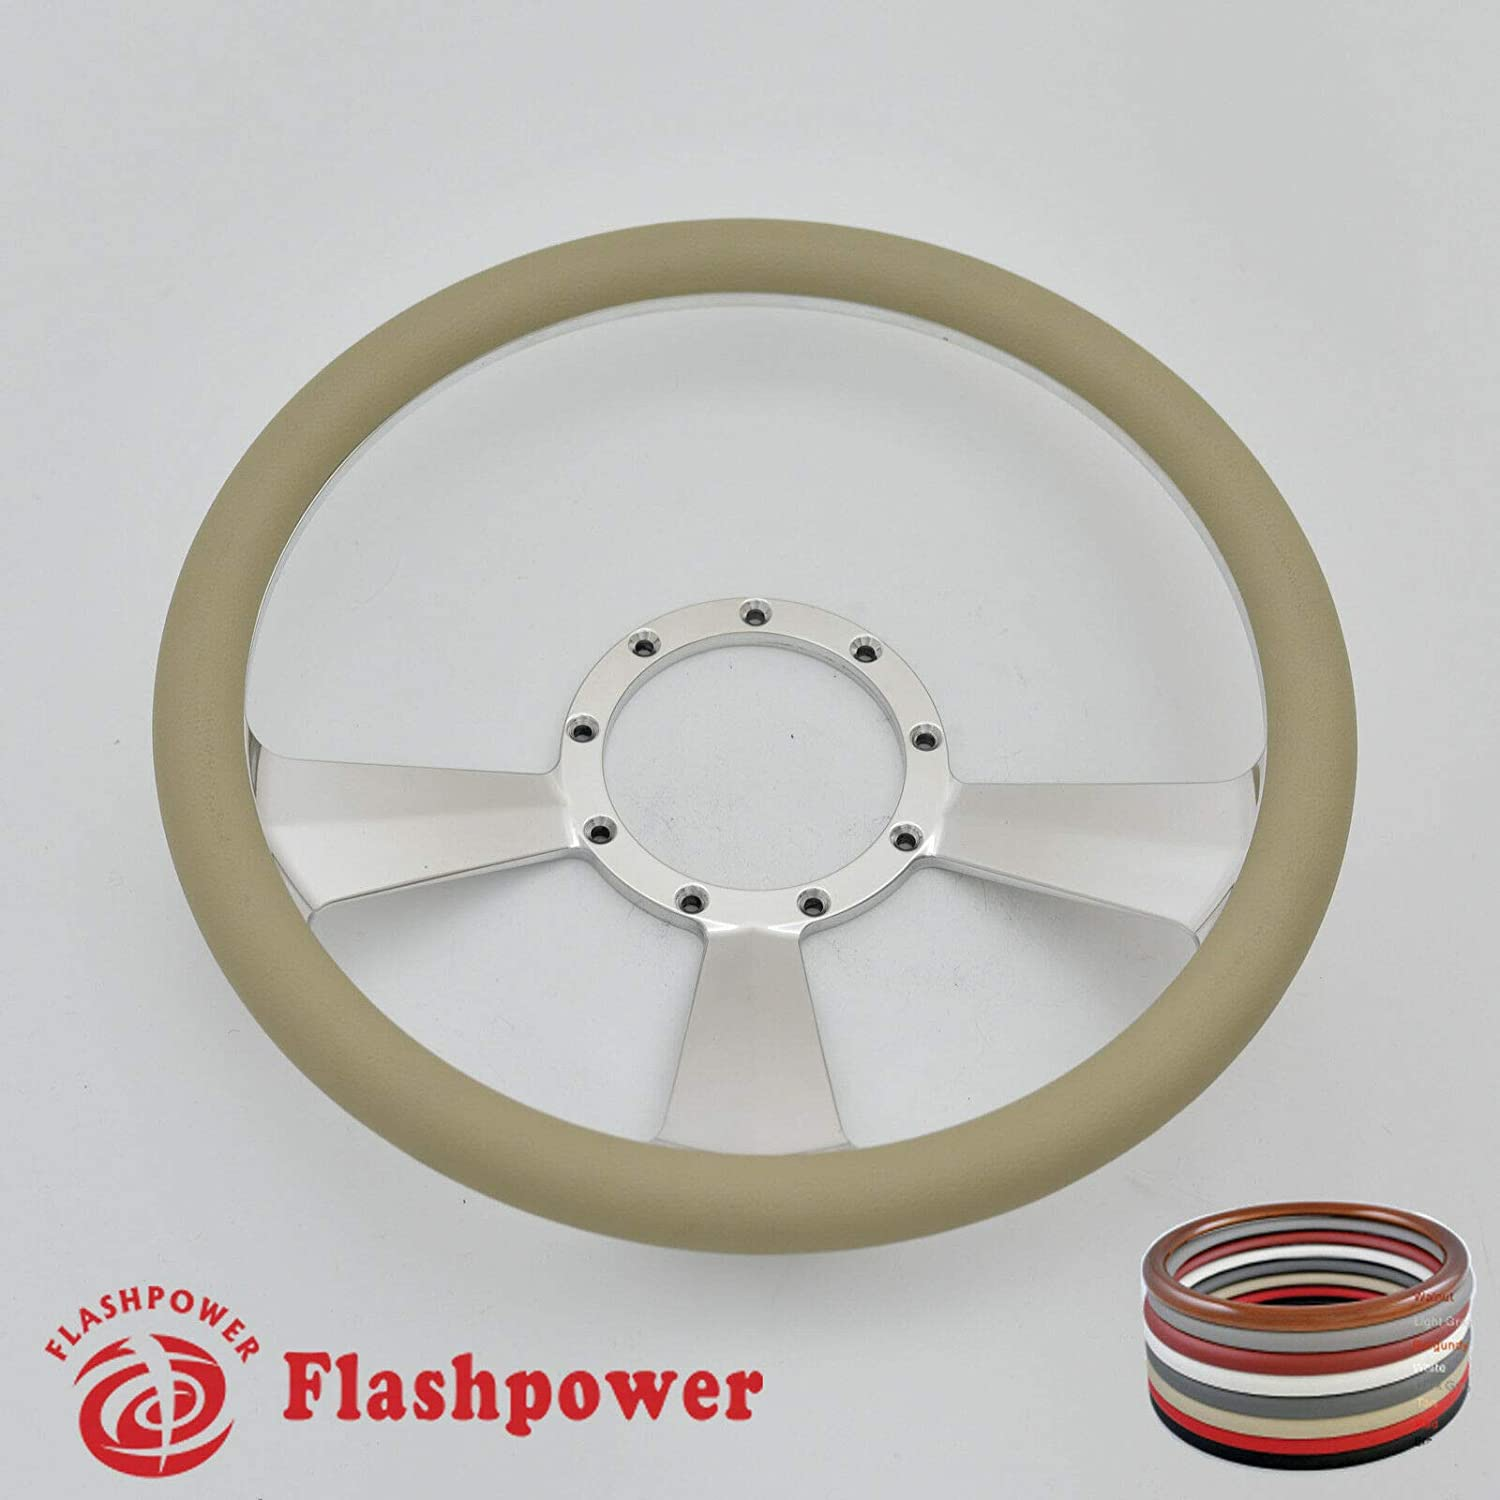 Flashpower 14 Billet Half Wrap 9 Bolts Steering Wheel with 2 Dish and Horn Button Tan